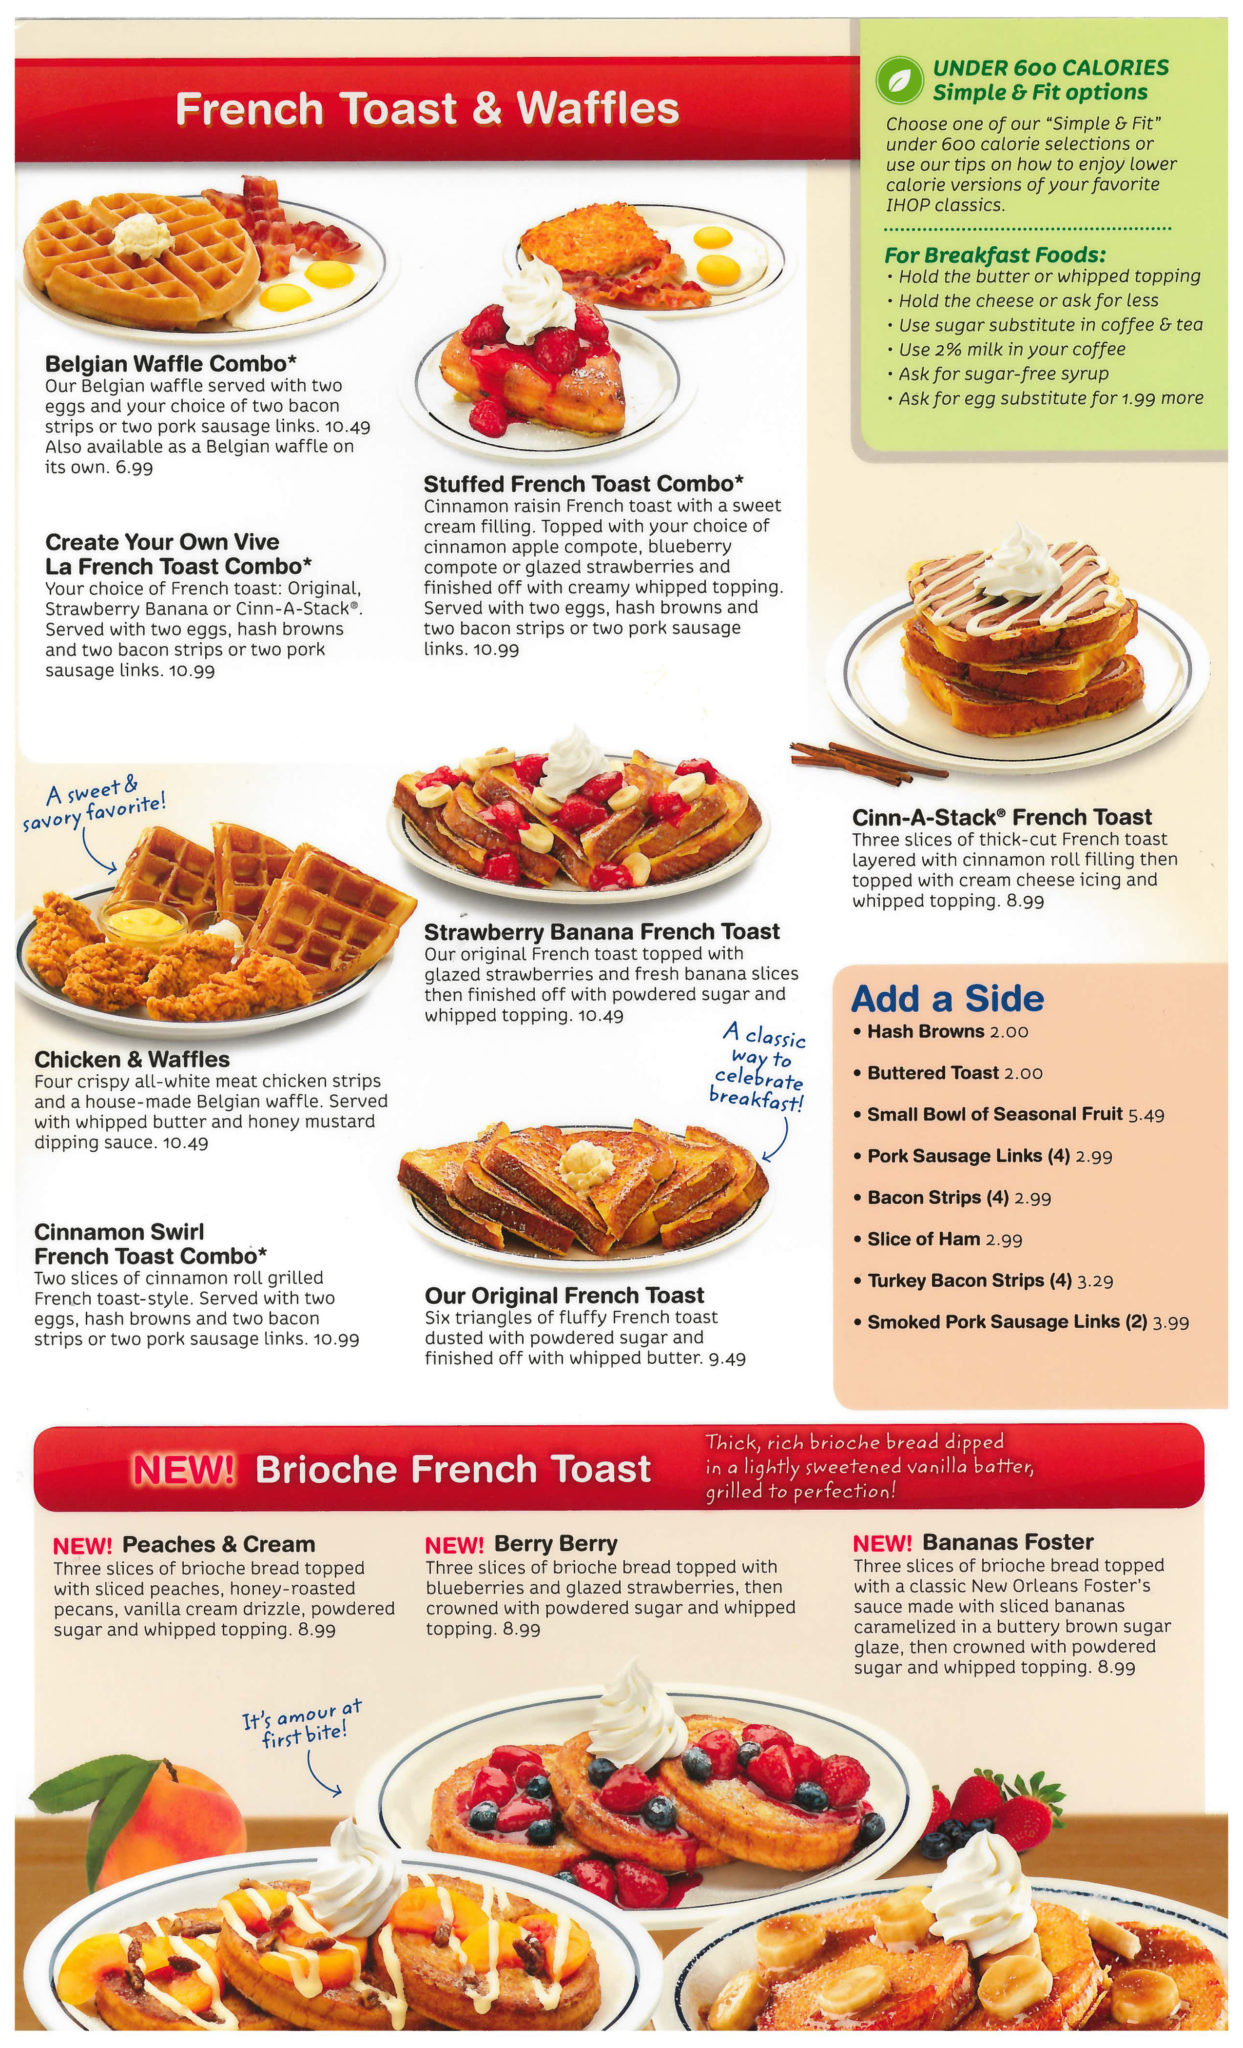 List of Synonyms and Antonyms of the Word: Ihop Appetizers